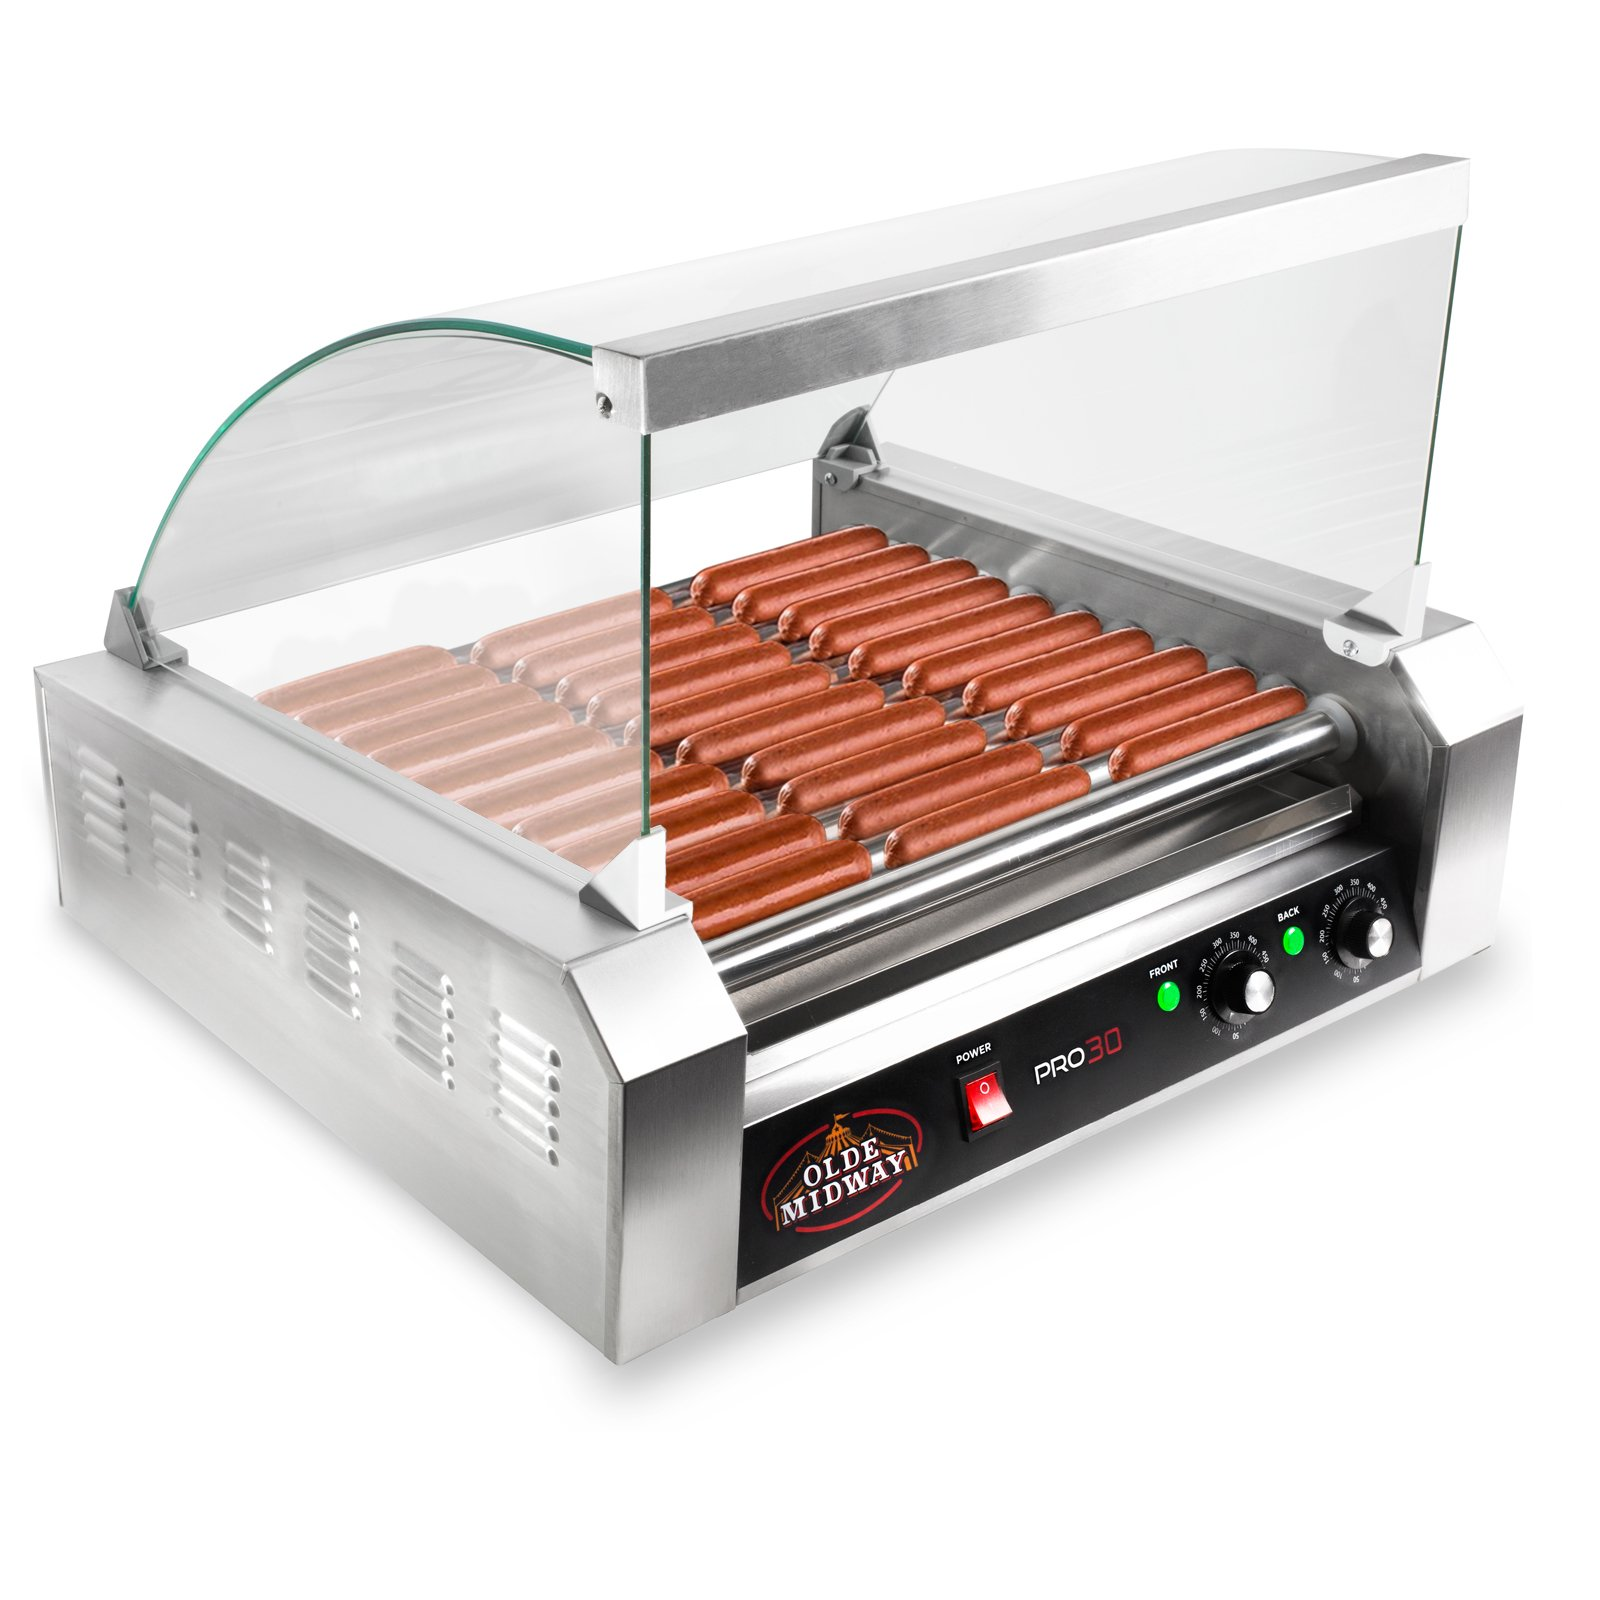 Olde Midway ROLL-PRO30-CVR Grill Cooker Machine, 24.3 x 21.9 x 14.2 inches, gray by Olde Midway